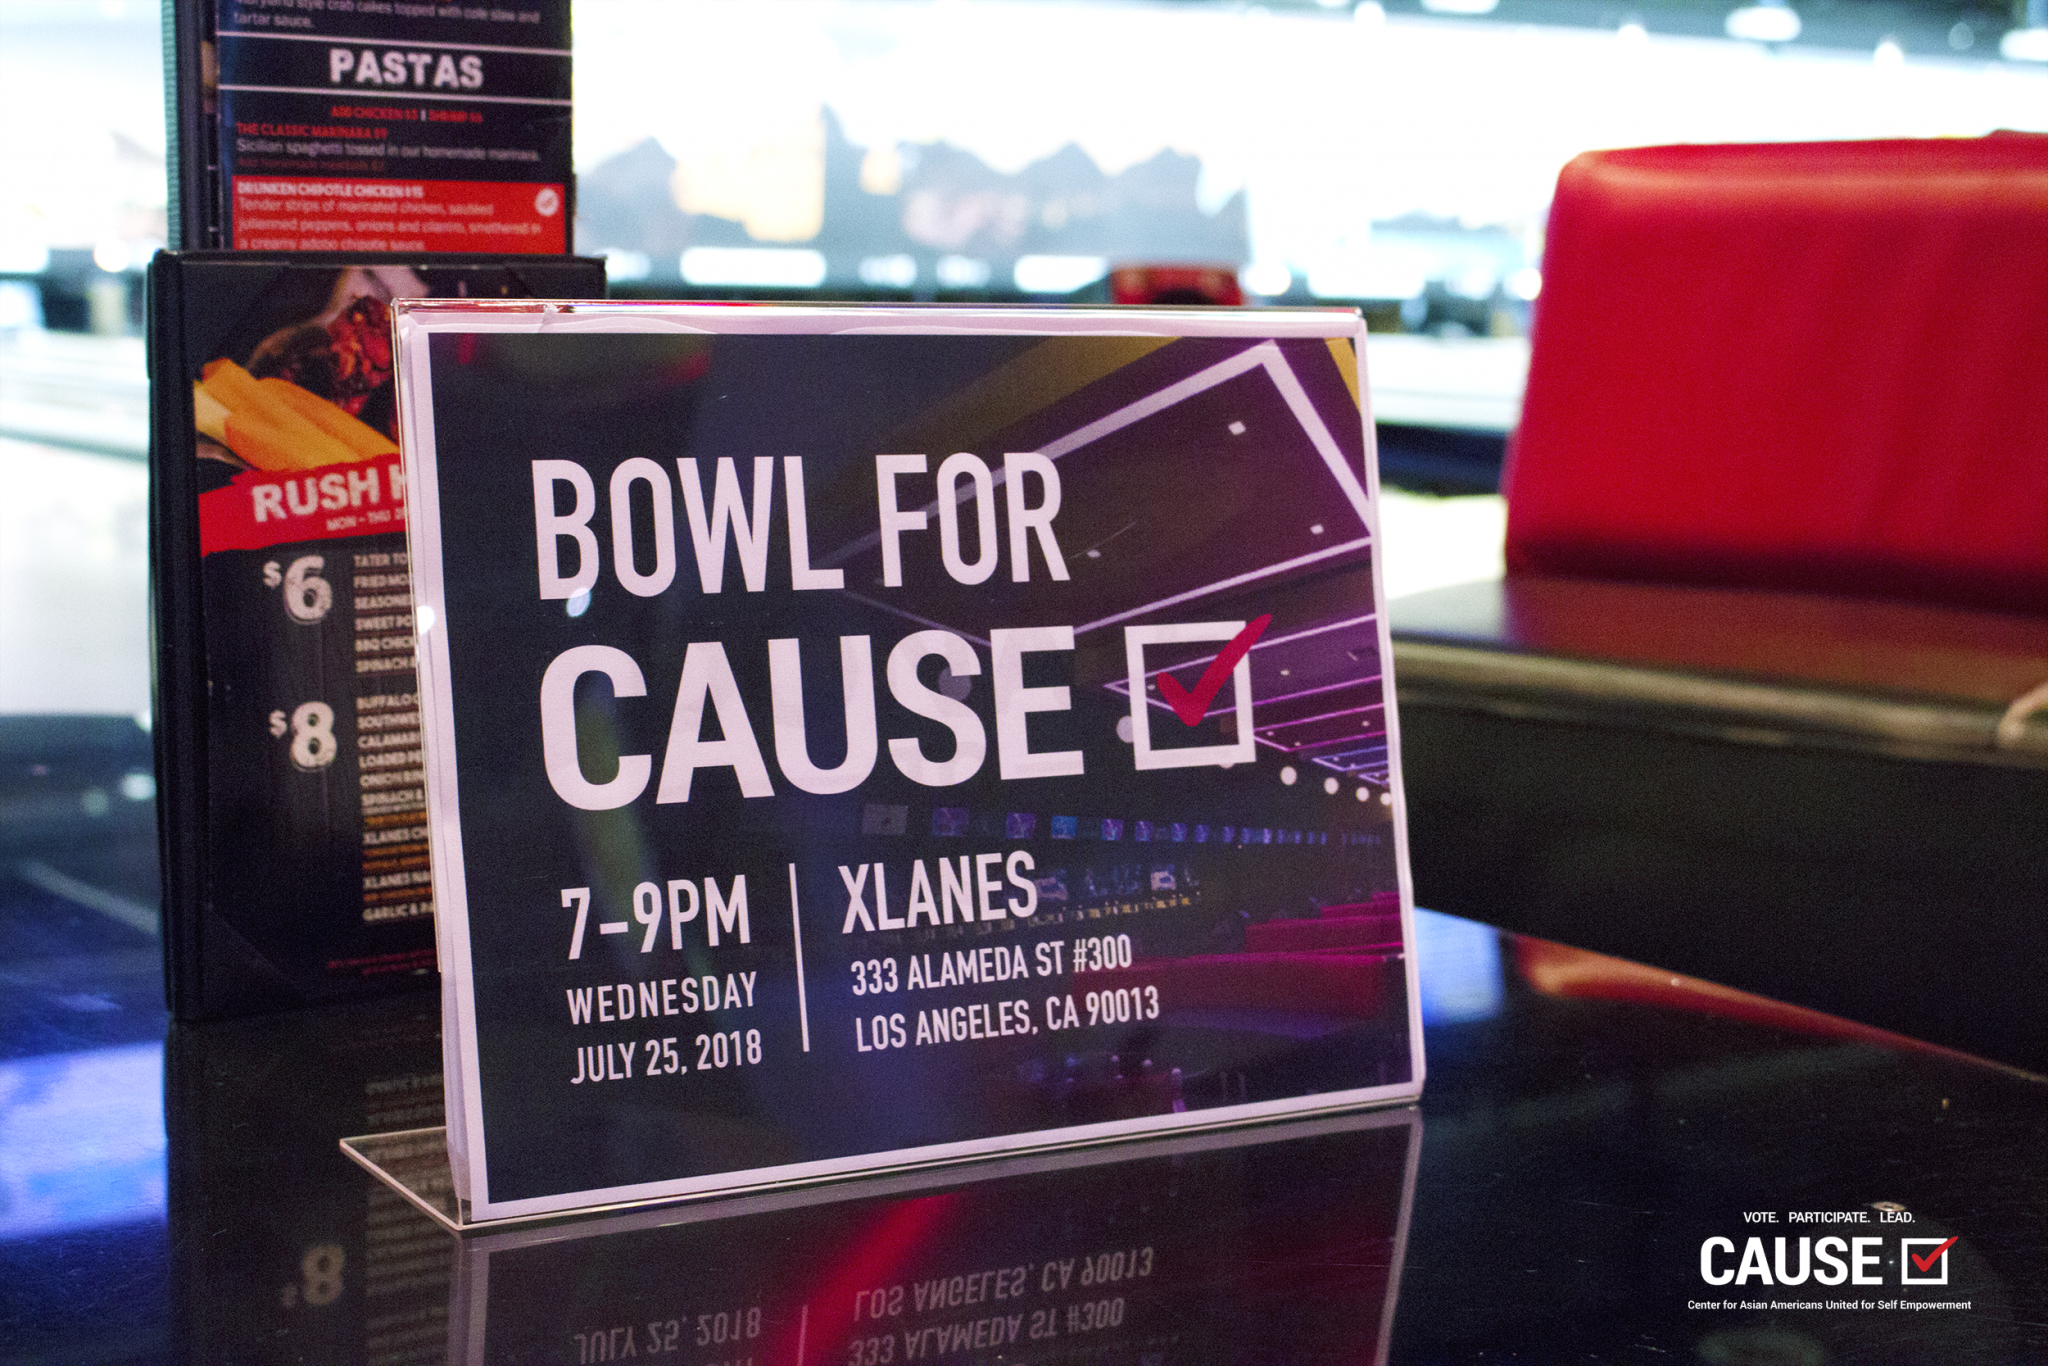 Bowl for CAUSE